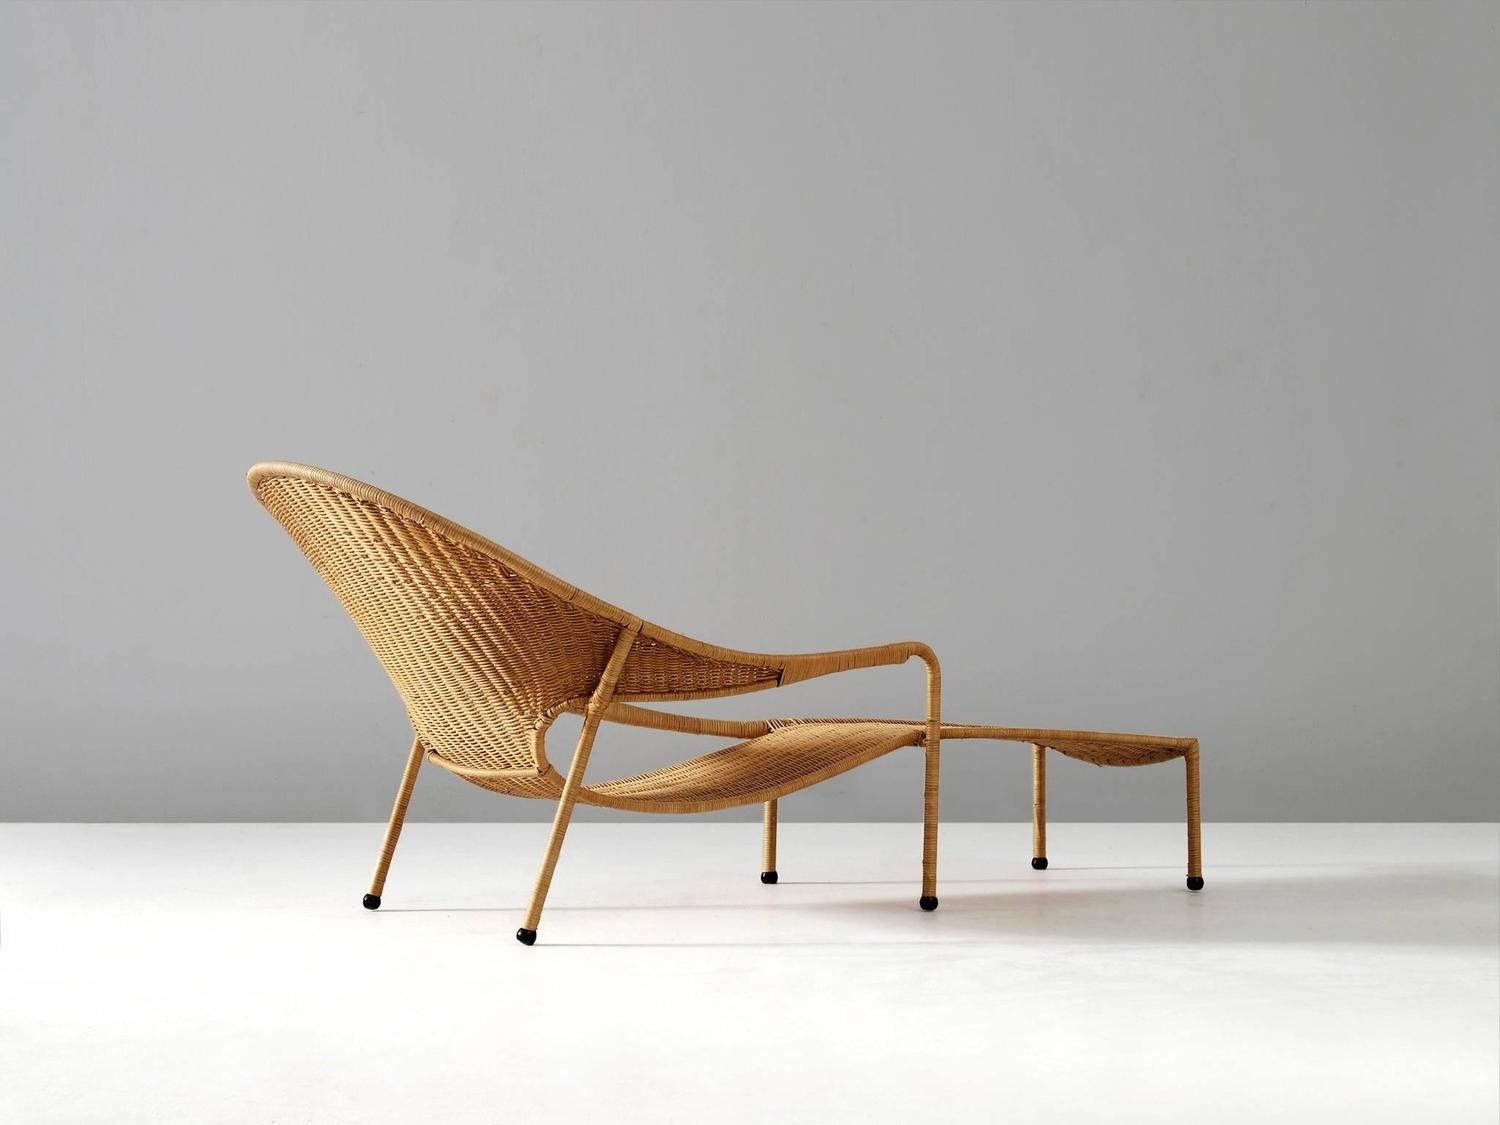 Francis mair wicker chaise longue for sale at 1stdibs for Cane chaise longue